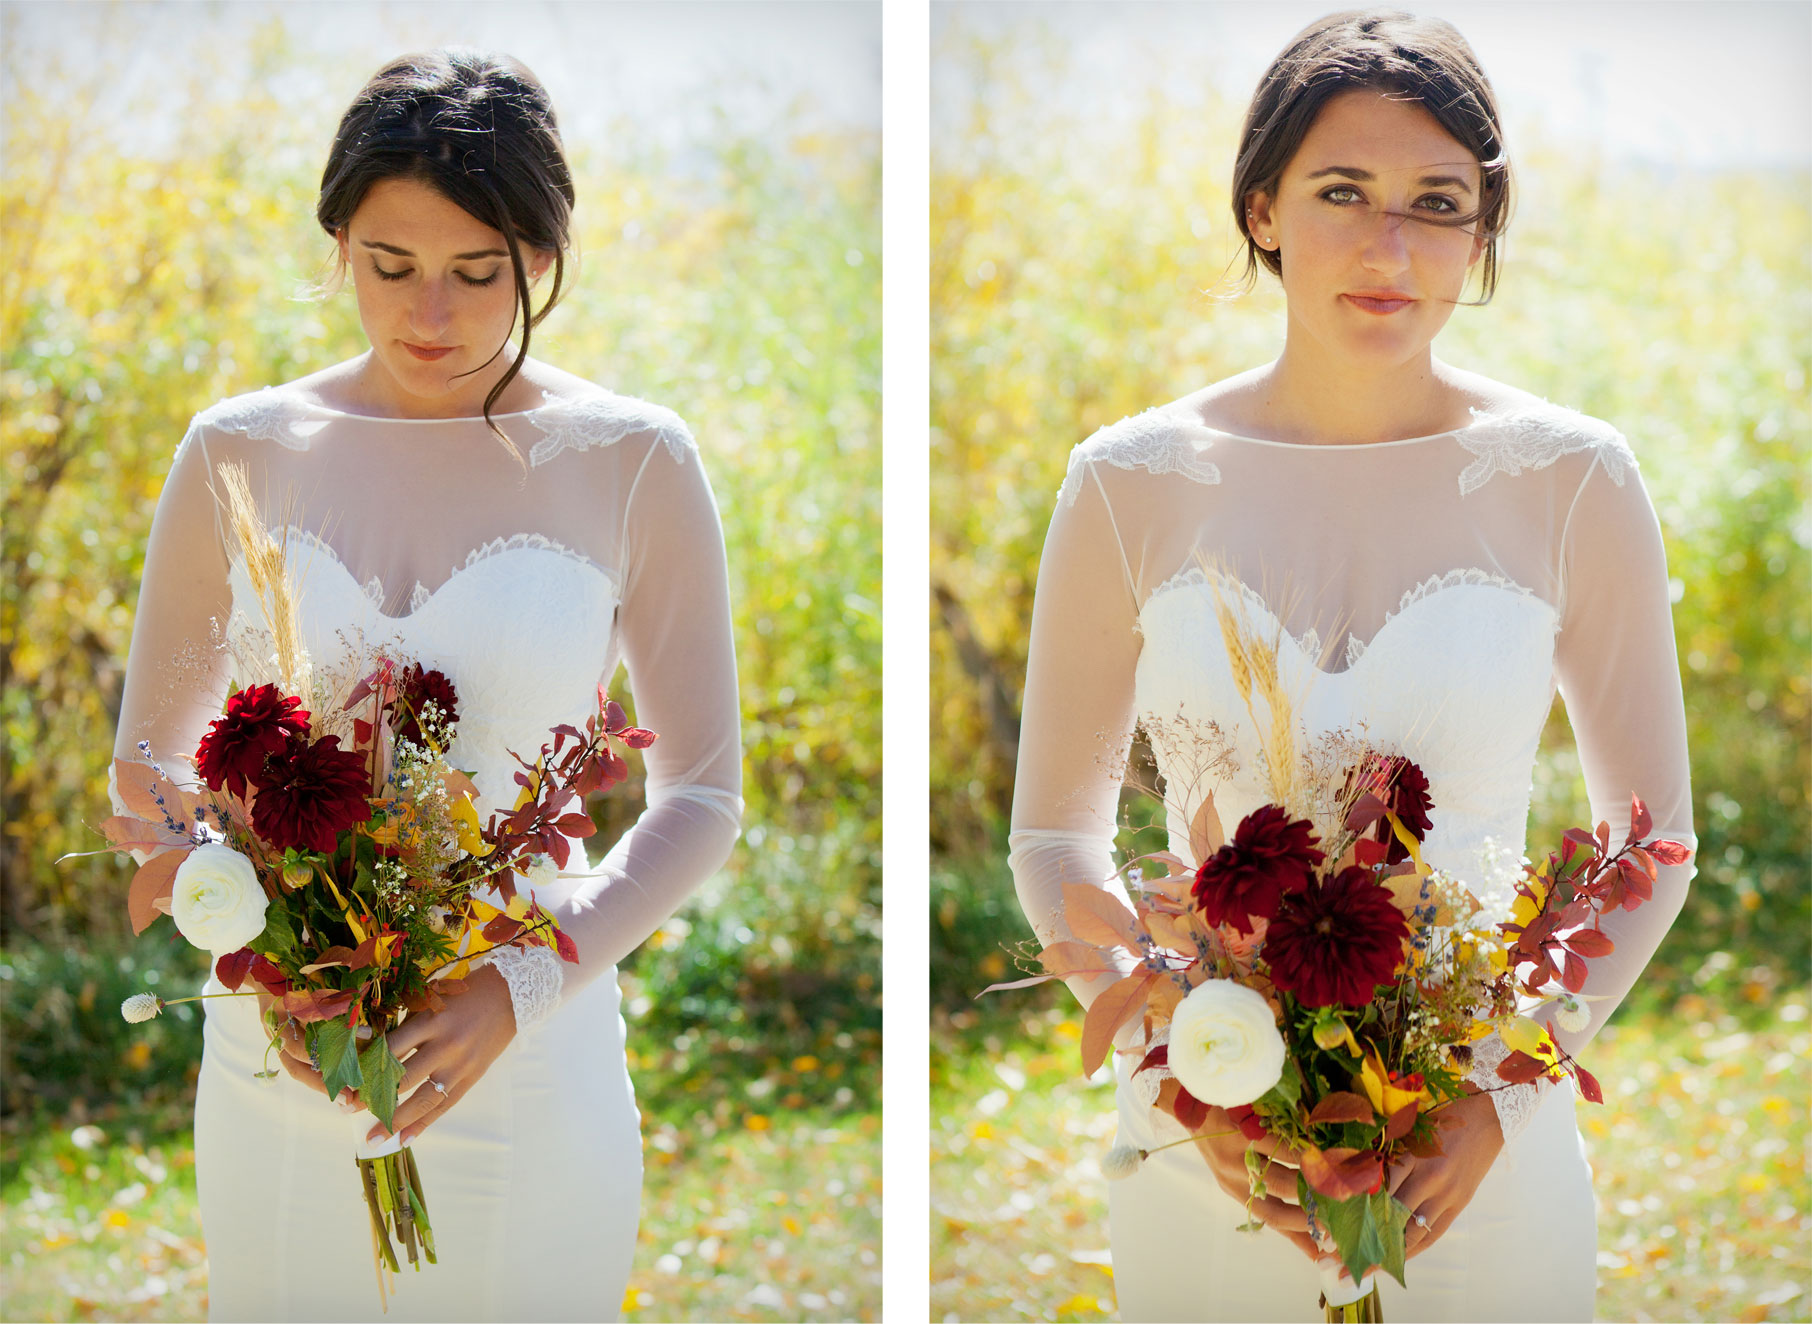 Bride - Florals - An Outdoor Autumn Wedding in Mancos, Colorado